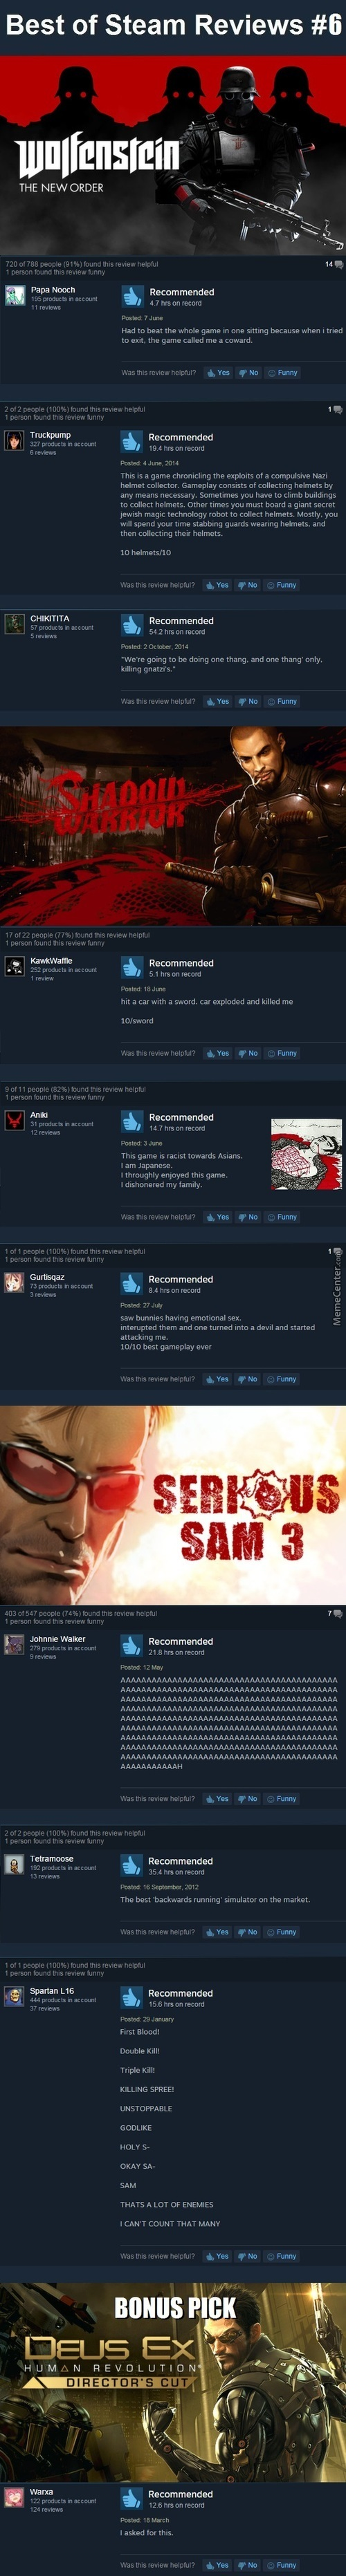 Best Steam Reviews #6 - Single Player Fps